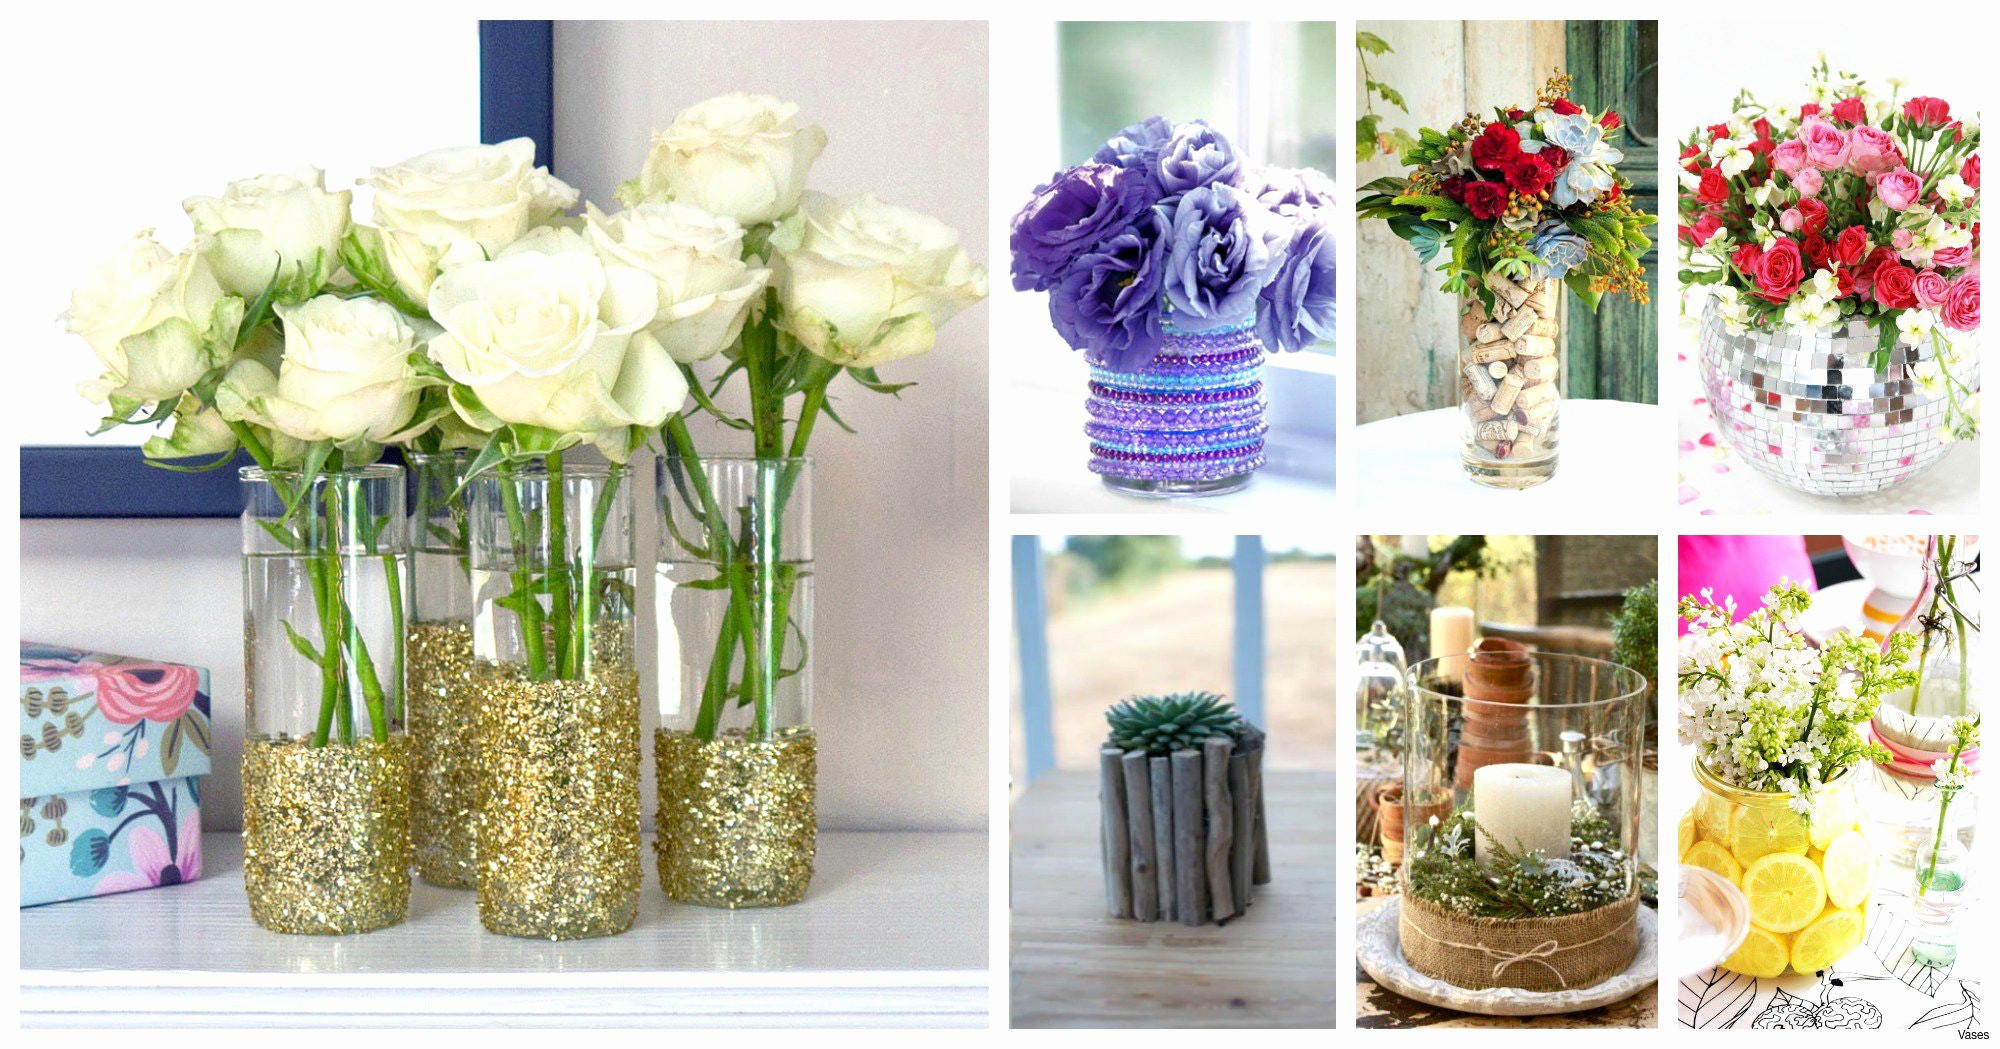 hydrangea centerpieces in square vases of 3 vase centerpieces images 3 band wedding set awesome square cut throughout 3 vase centerpieces images 3 band wedding set awesome square cut wedding rings dsc h vases